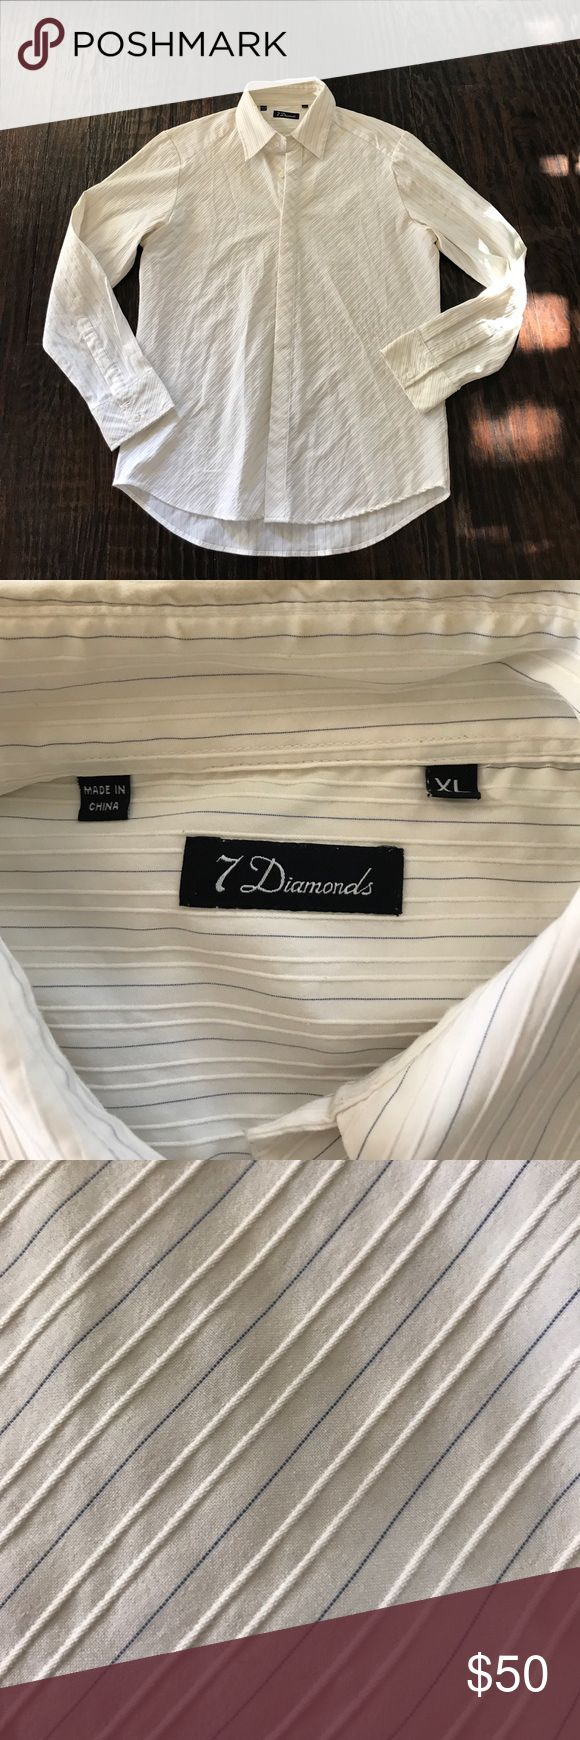 "7 Diamonds Men's Long Sleeve Button Down Shirt Cream with blue stripes button down shirt. Fabric is stretchy. Pointed collar. Pit to pit 22.5"", Front length 29.5"", Sleeve Length from hem to pit 20"". 7 Diamonds Shirts Dress Shirts"